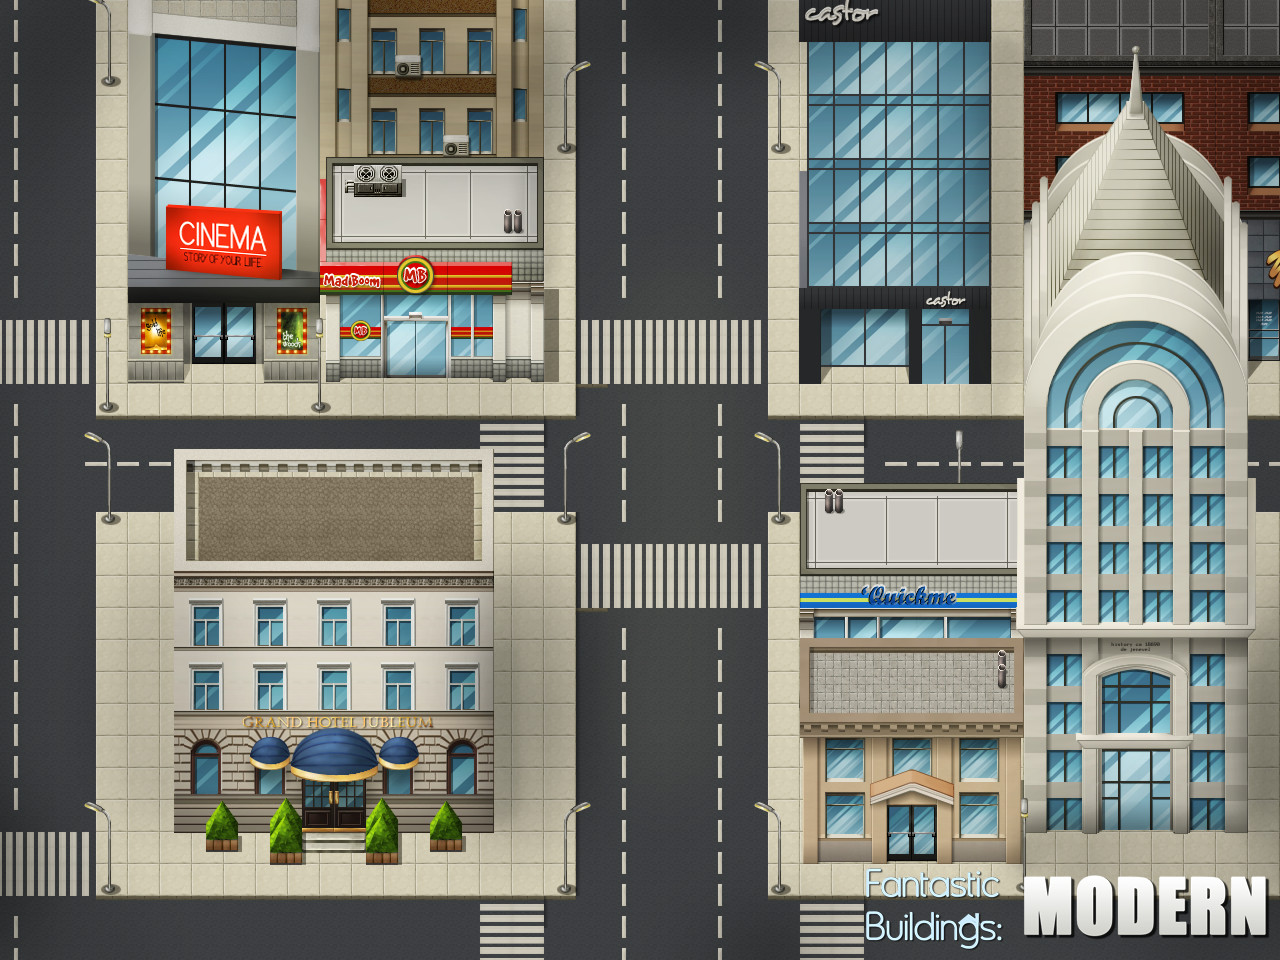 RPG Maker VX Ace - Fantastic Buildings: Modern